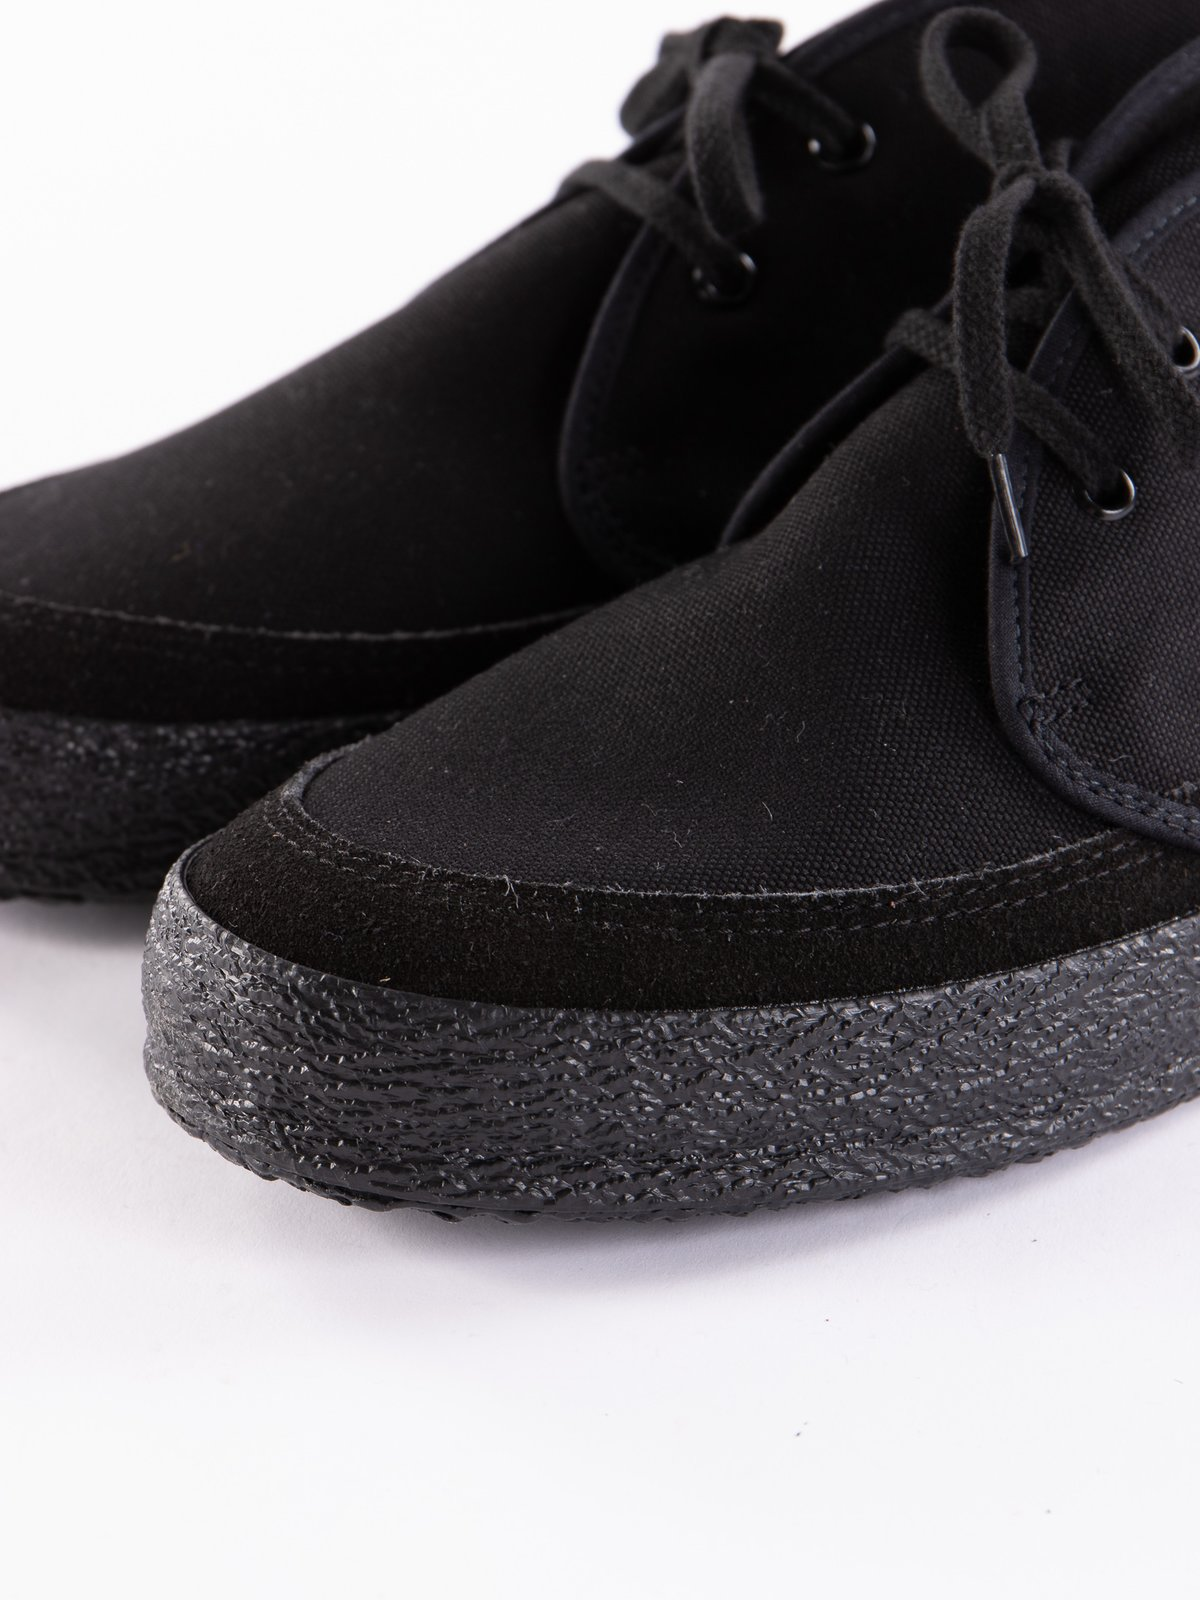 Black Sloth Chukka - Image 3